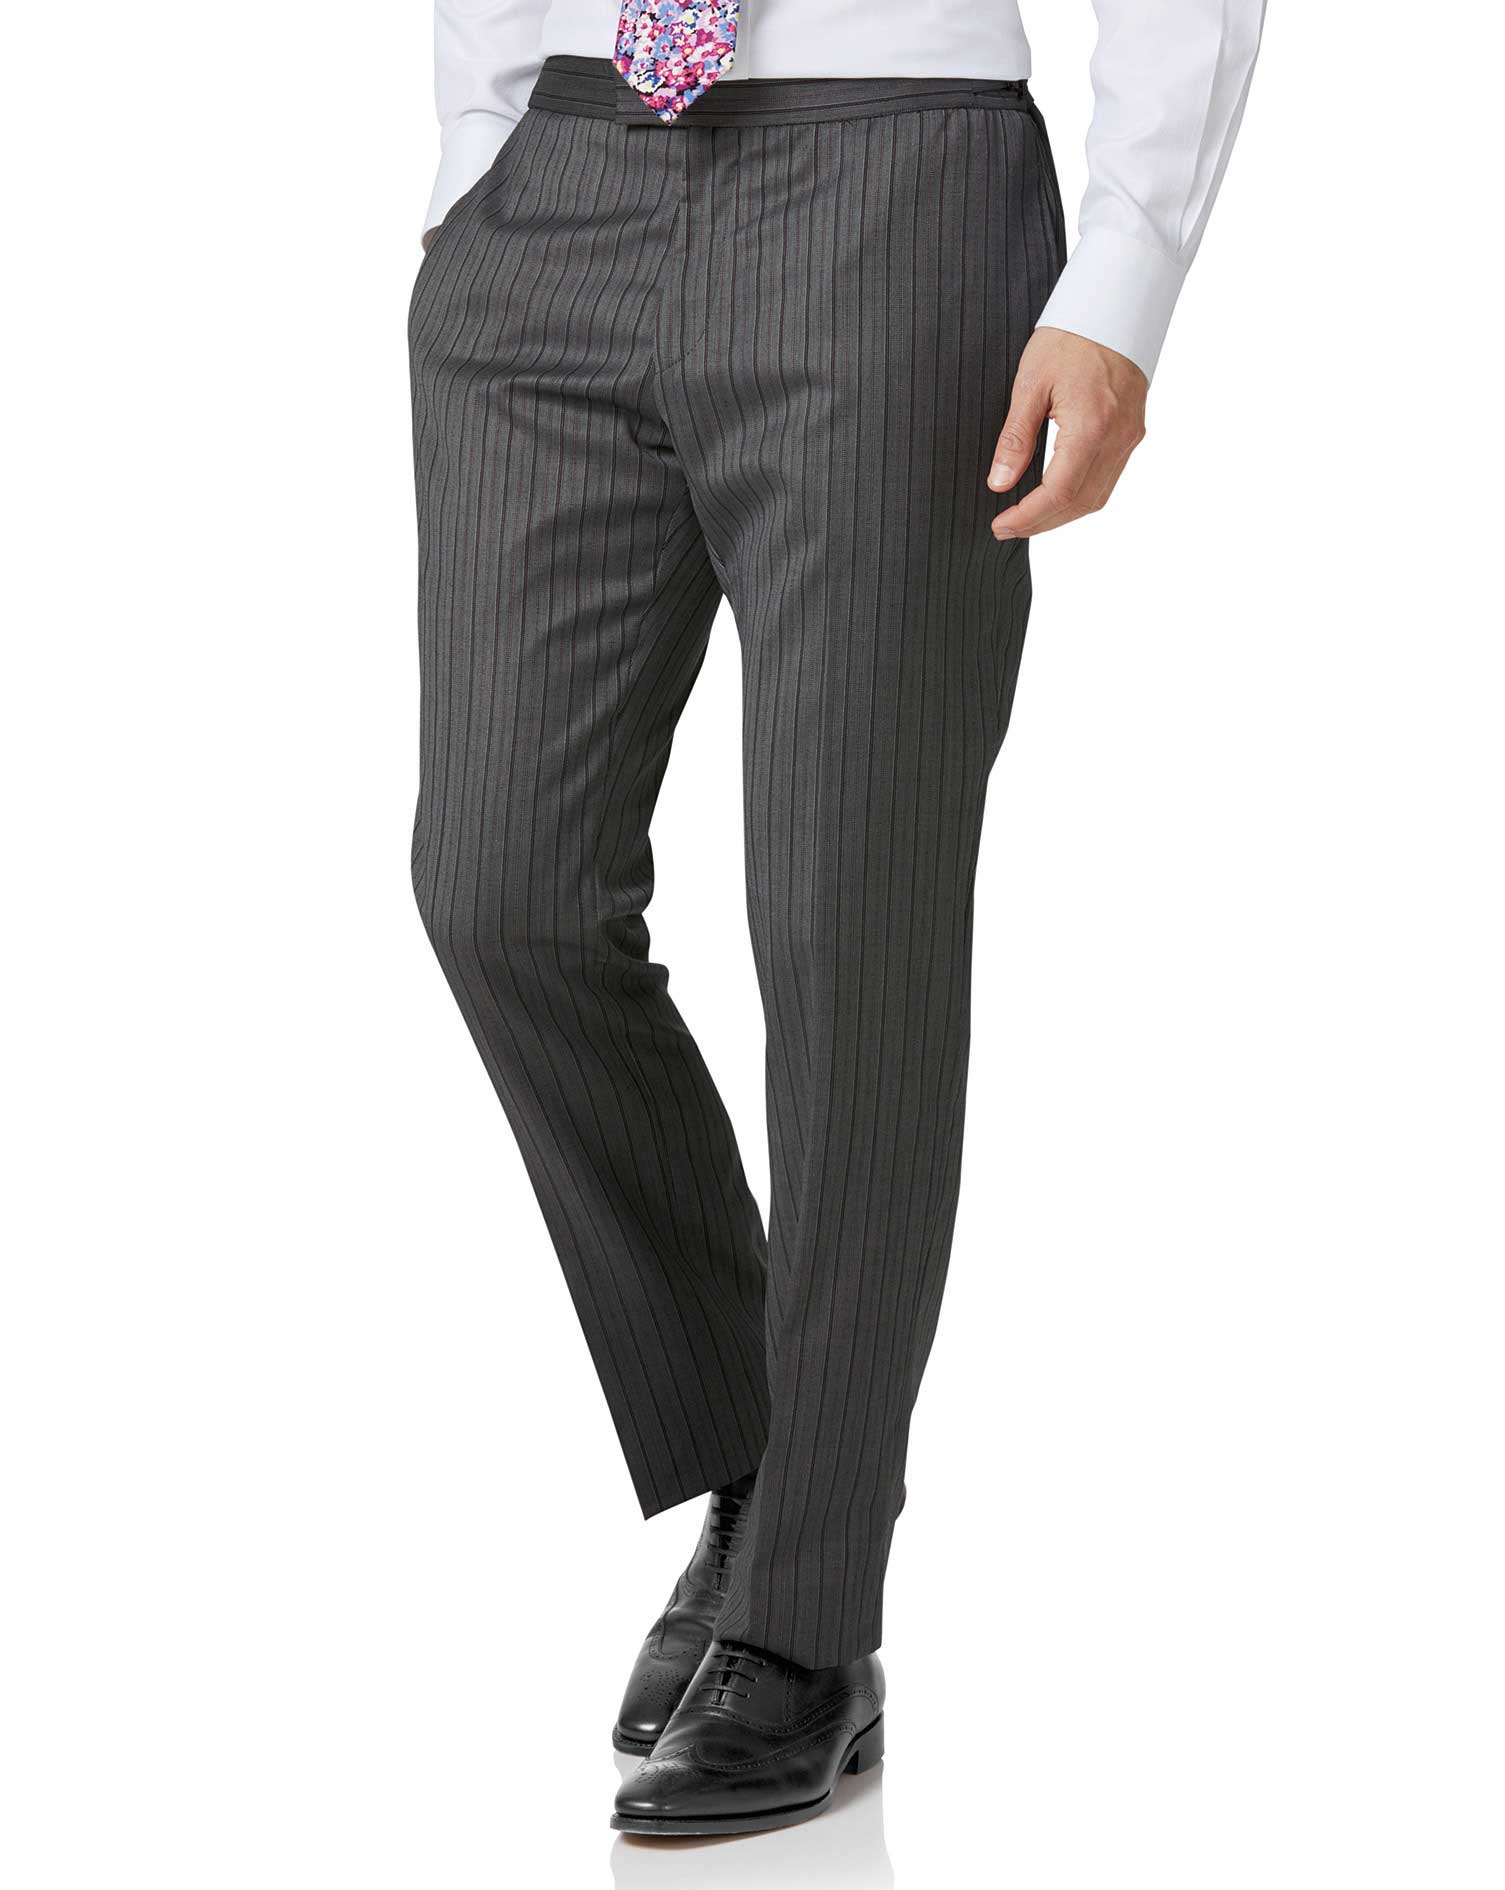 Charcoal Stripe Slim Fit Morning Suit Trousers Size 34/32 by Charles Tyrwhitt